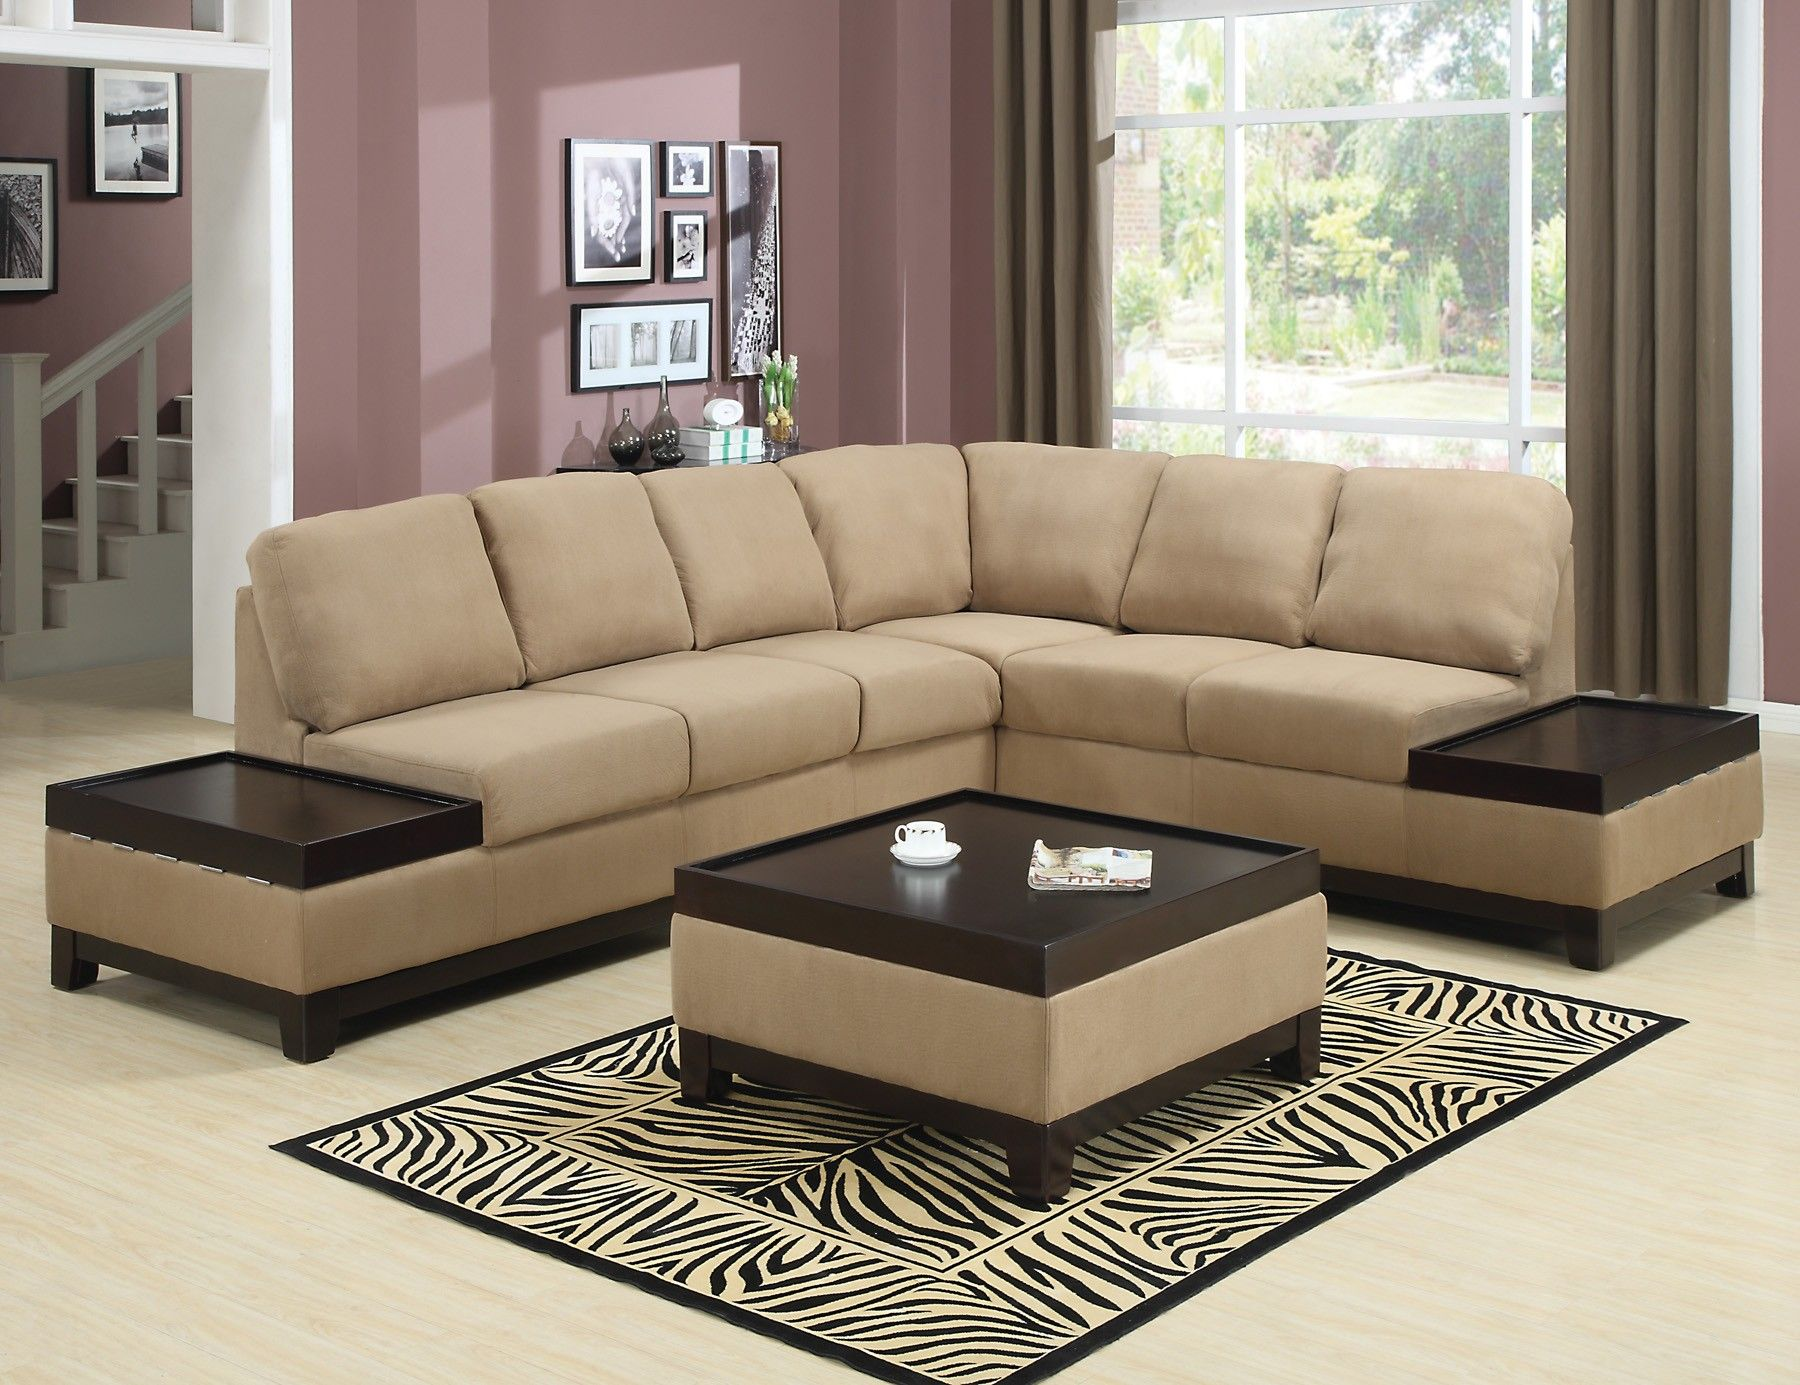 Built In Tables Tan Microfiber Sectional W Built In End Tables World Imports 2152 Modern Sofa Sectional Sectional Sofa Green Bedroom Walls